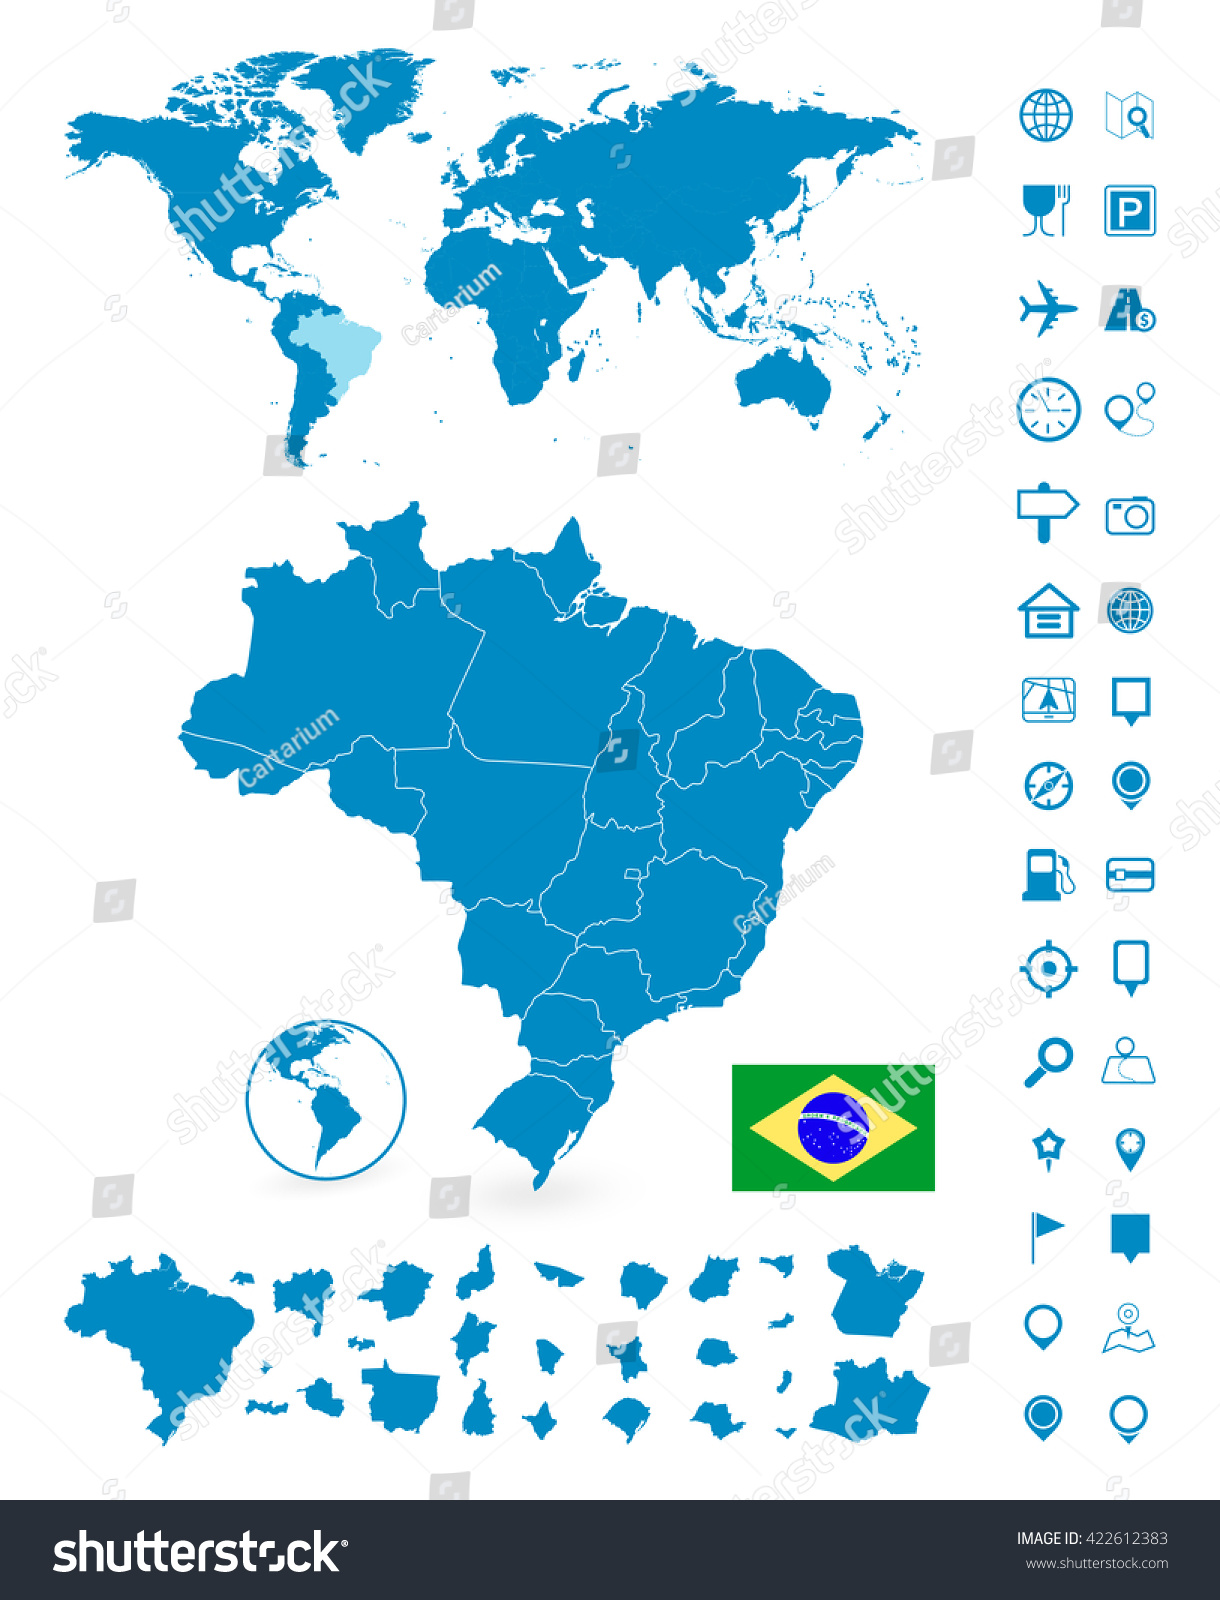 Detailed map brazil world map navigation vector de stock422612383 detailed map of brazil and world map navigation set vector illustration gumiabroncs